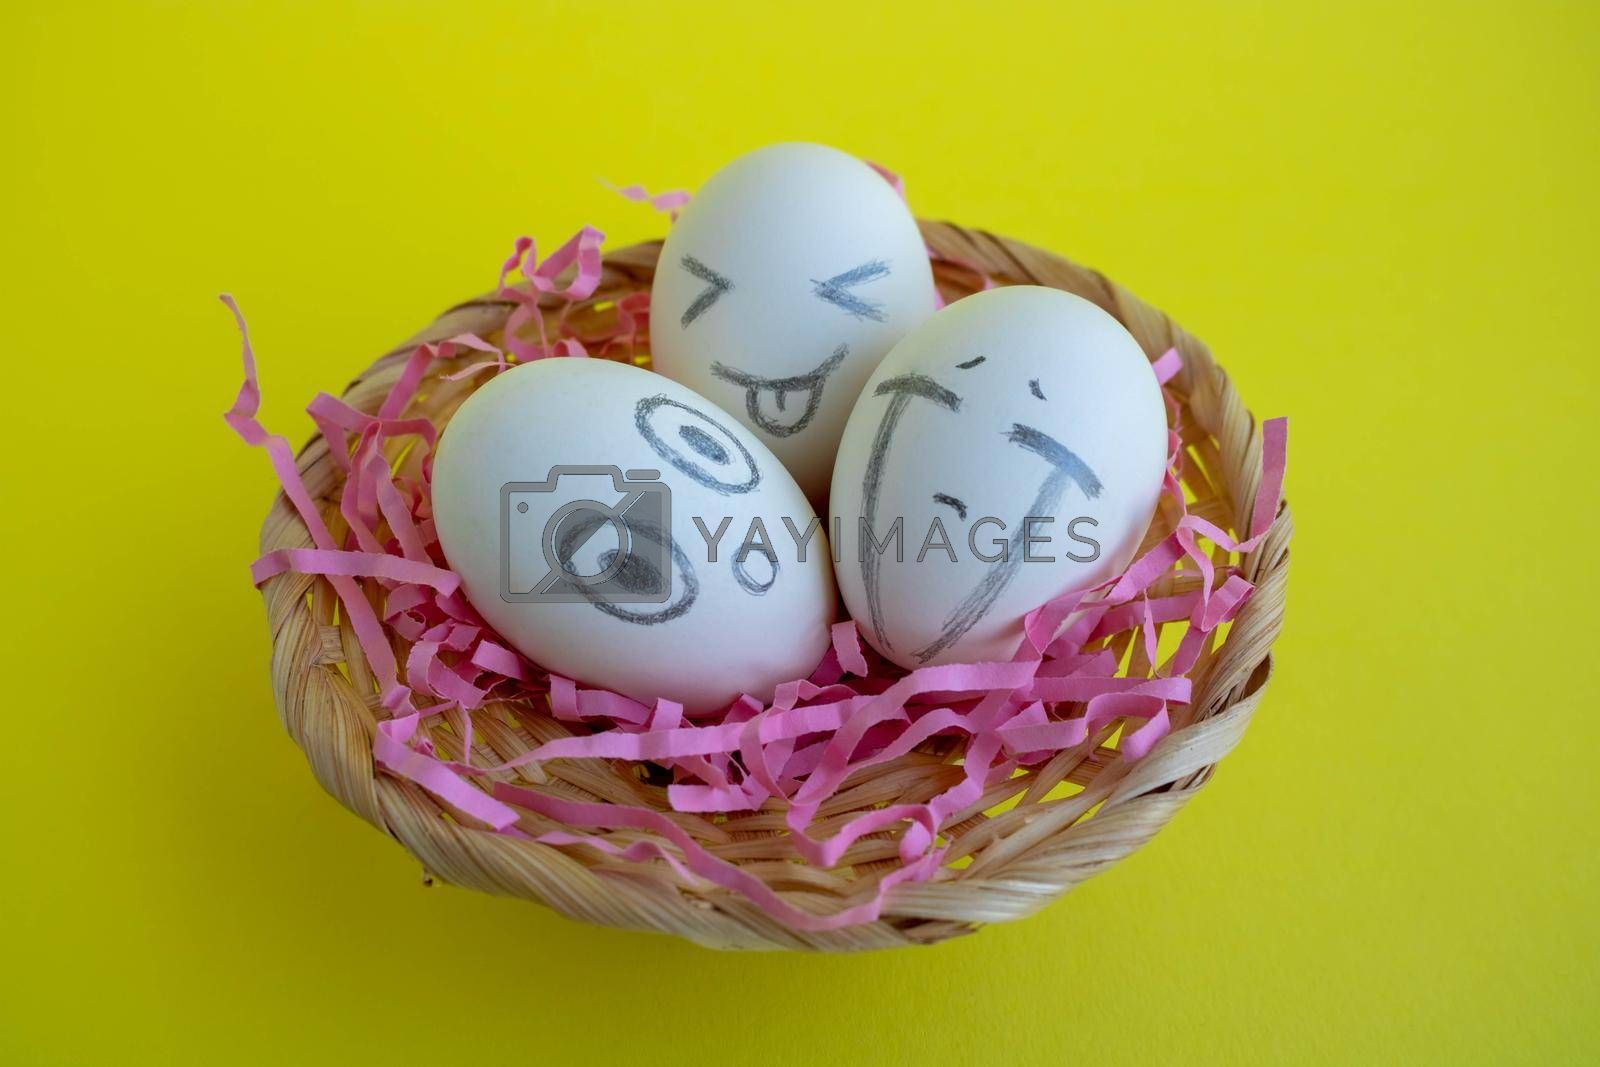 In the basket are three charming white eggs with faces on a yellow background. Easter Concept.